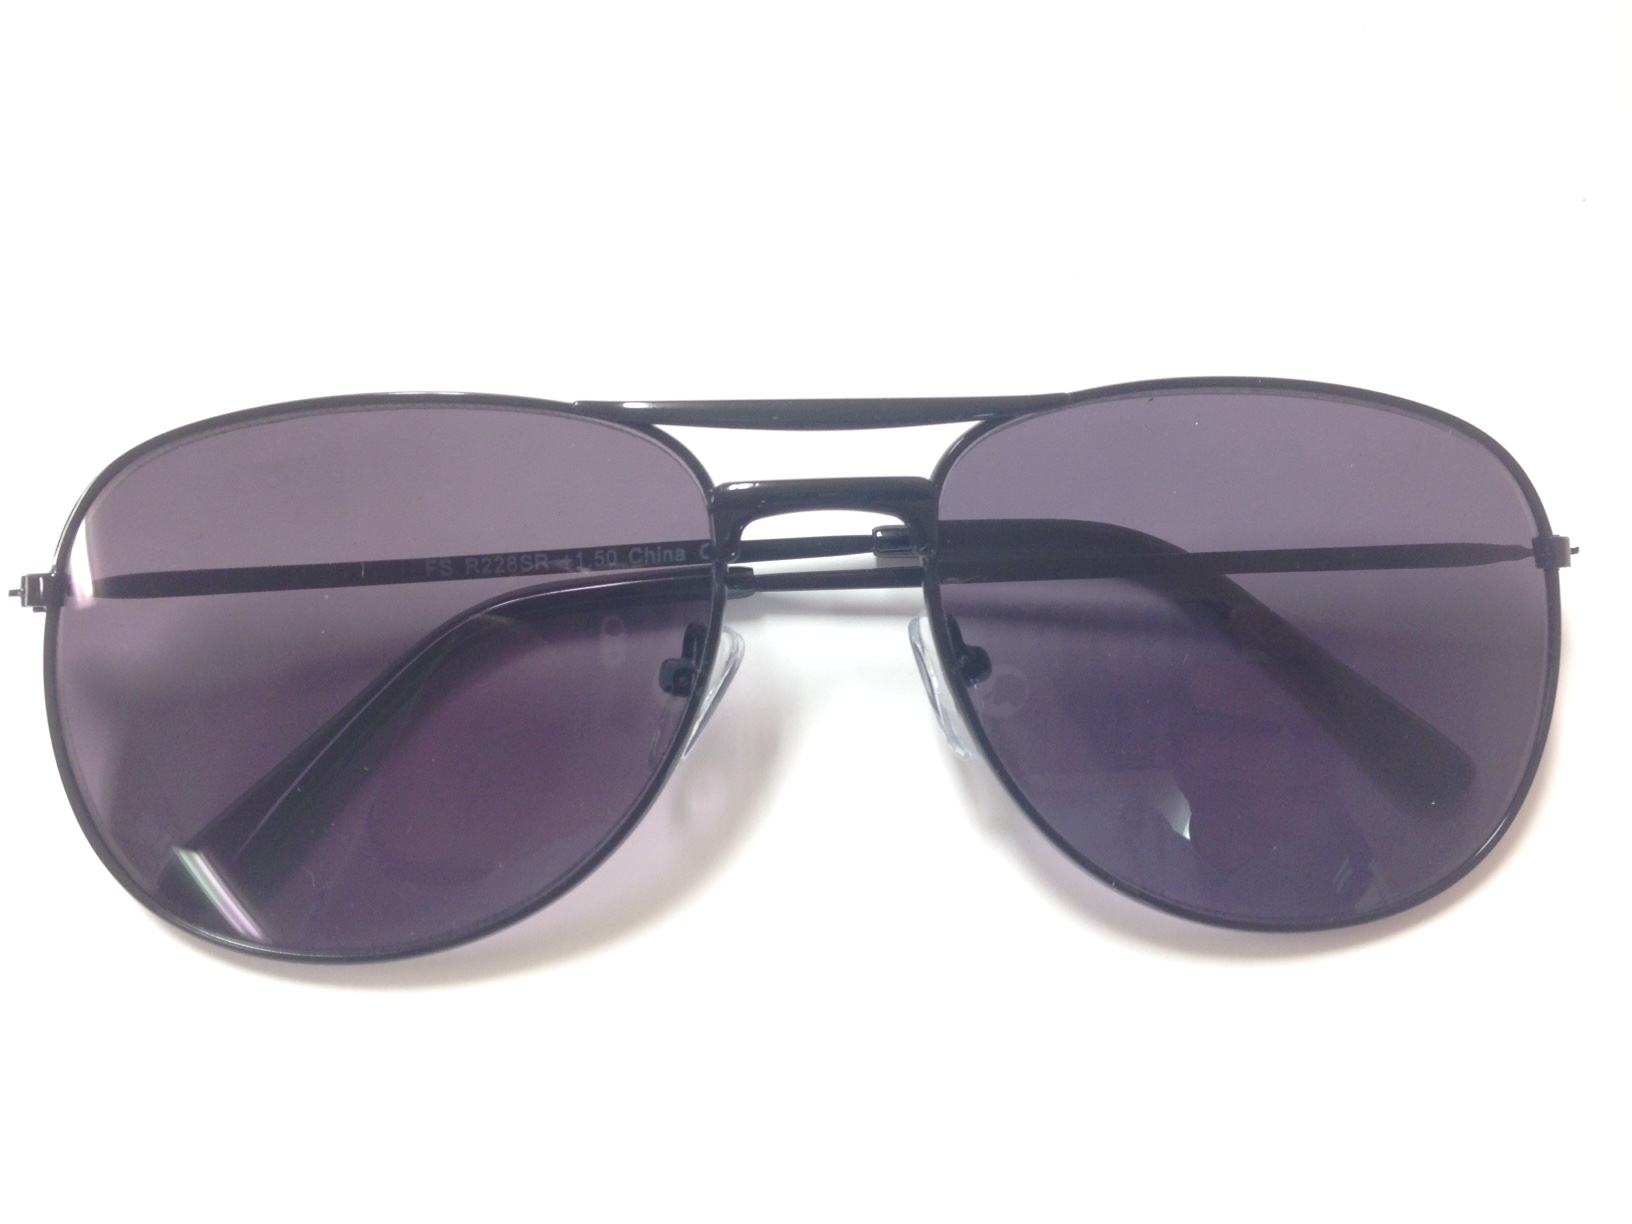 Polarized Reading Sunglasses  boomers in the know sunglasses readers full reading lens